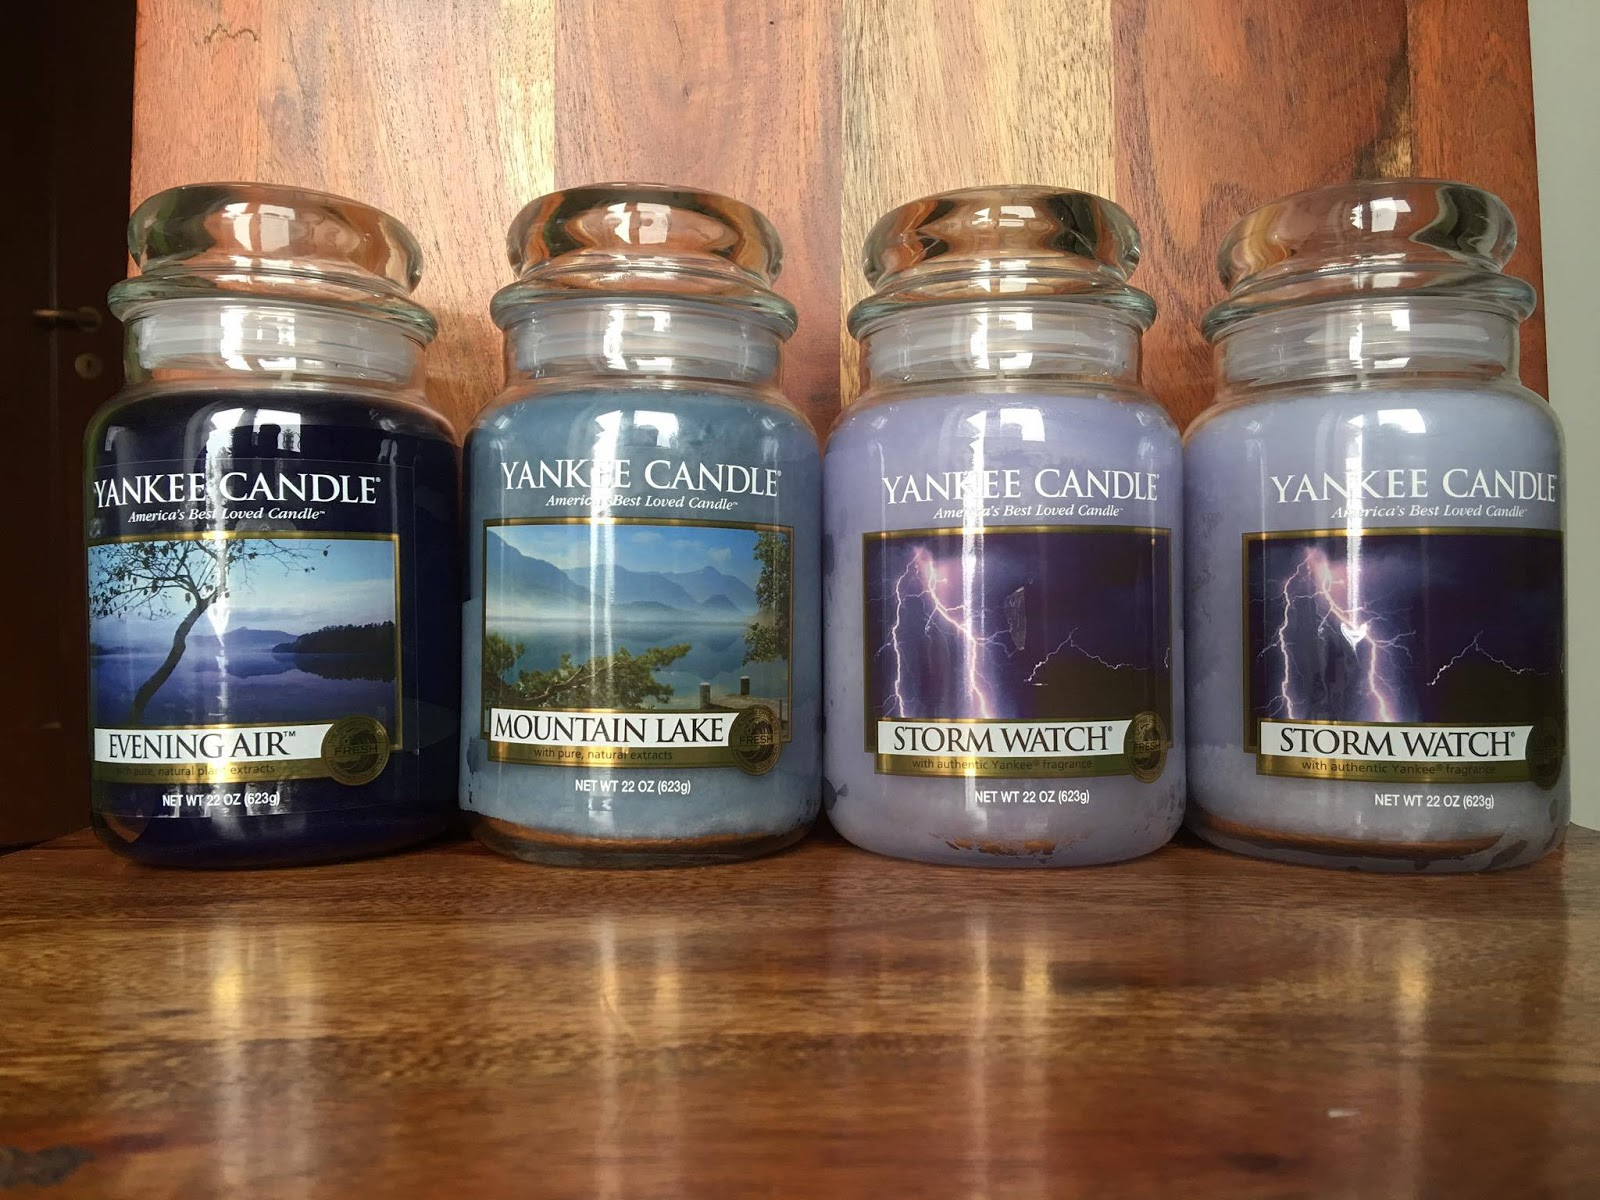 Evening Air 2017 Large Jar Deerfield Label The Scent Is A Watery Mix Of Geranium Basil Cedarwood Musk Cloves And Some Flowers Lot People